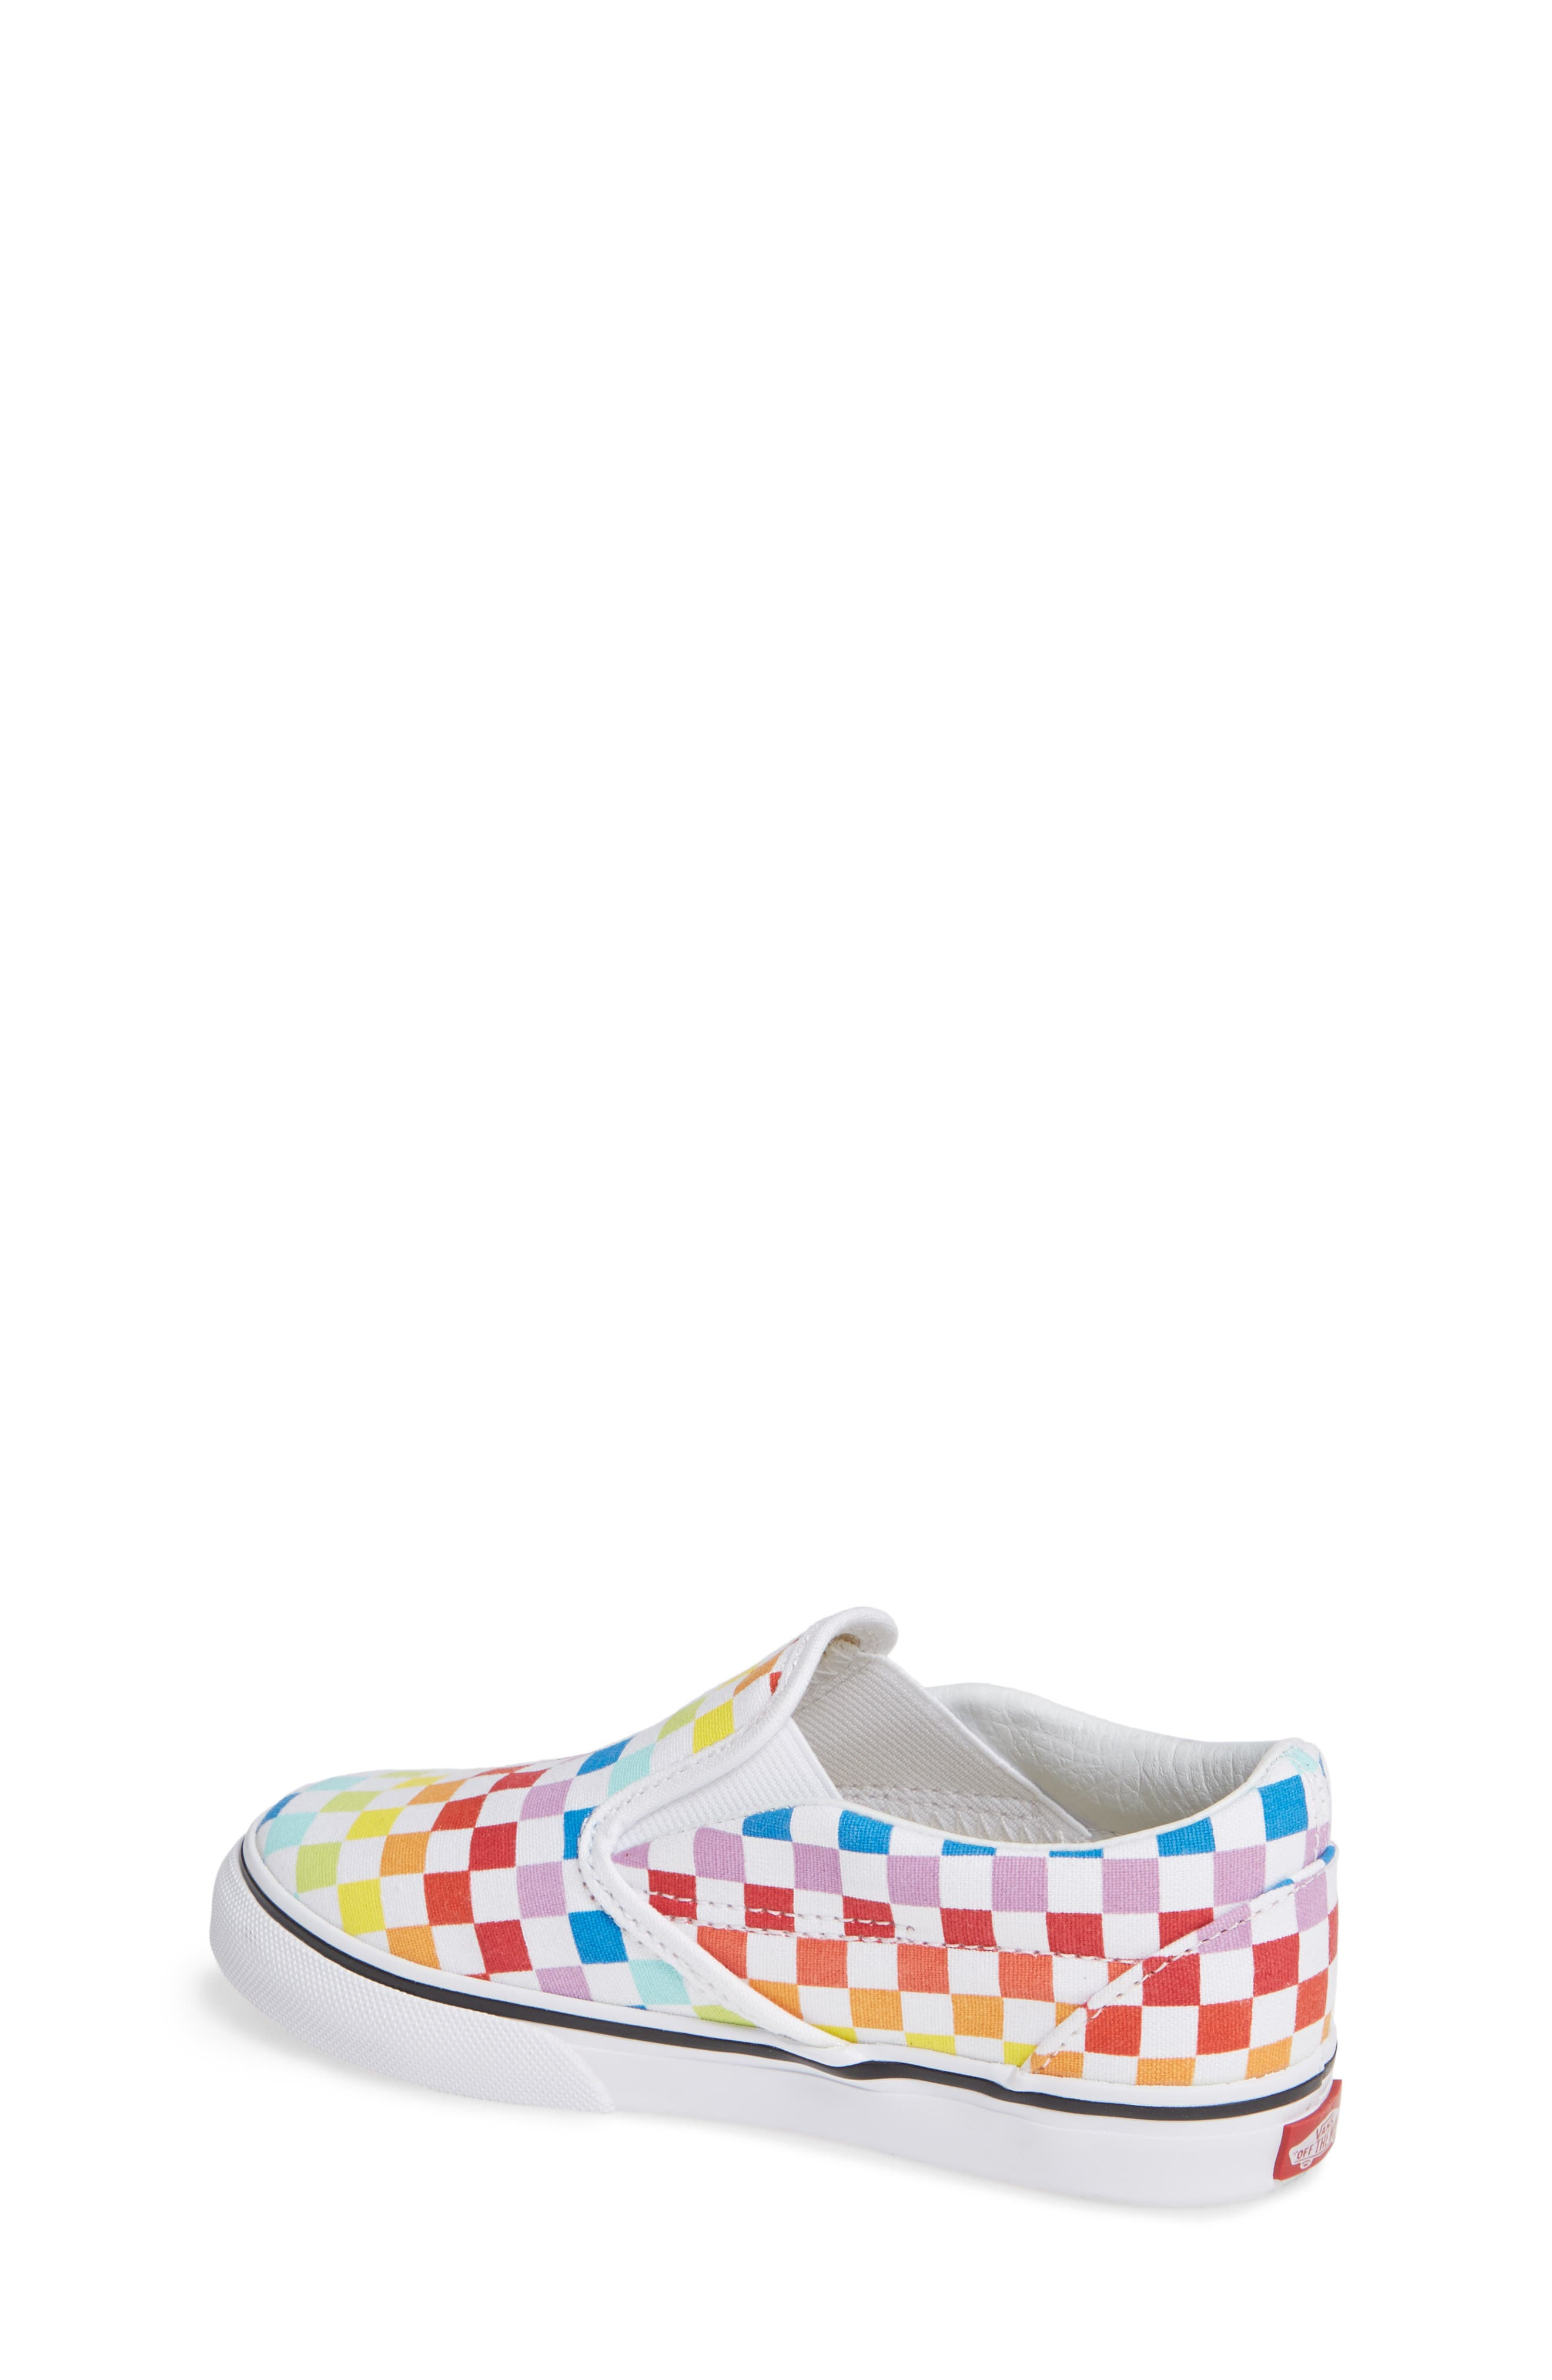 35dcc7802 Girls' Vans Shoes | Nordstrom